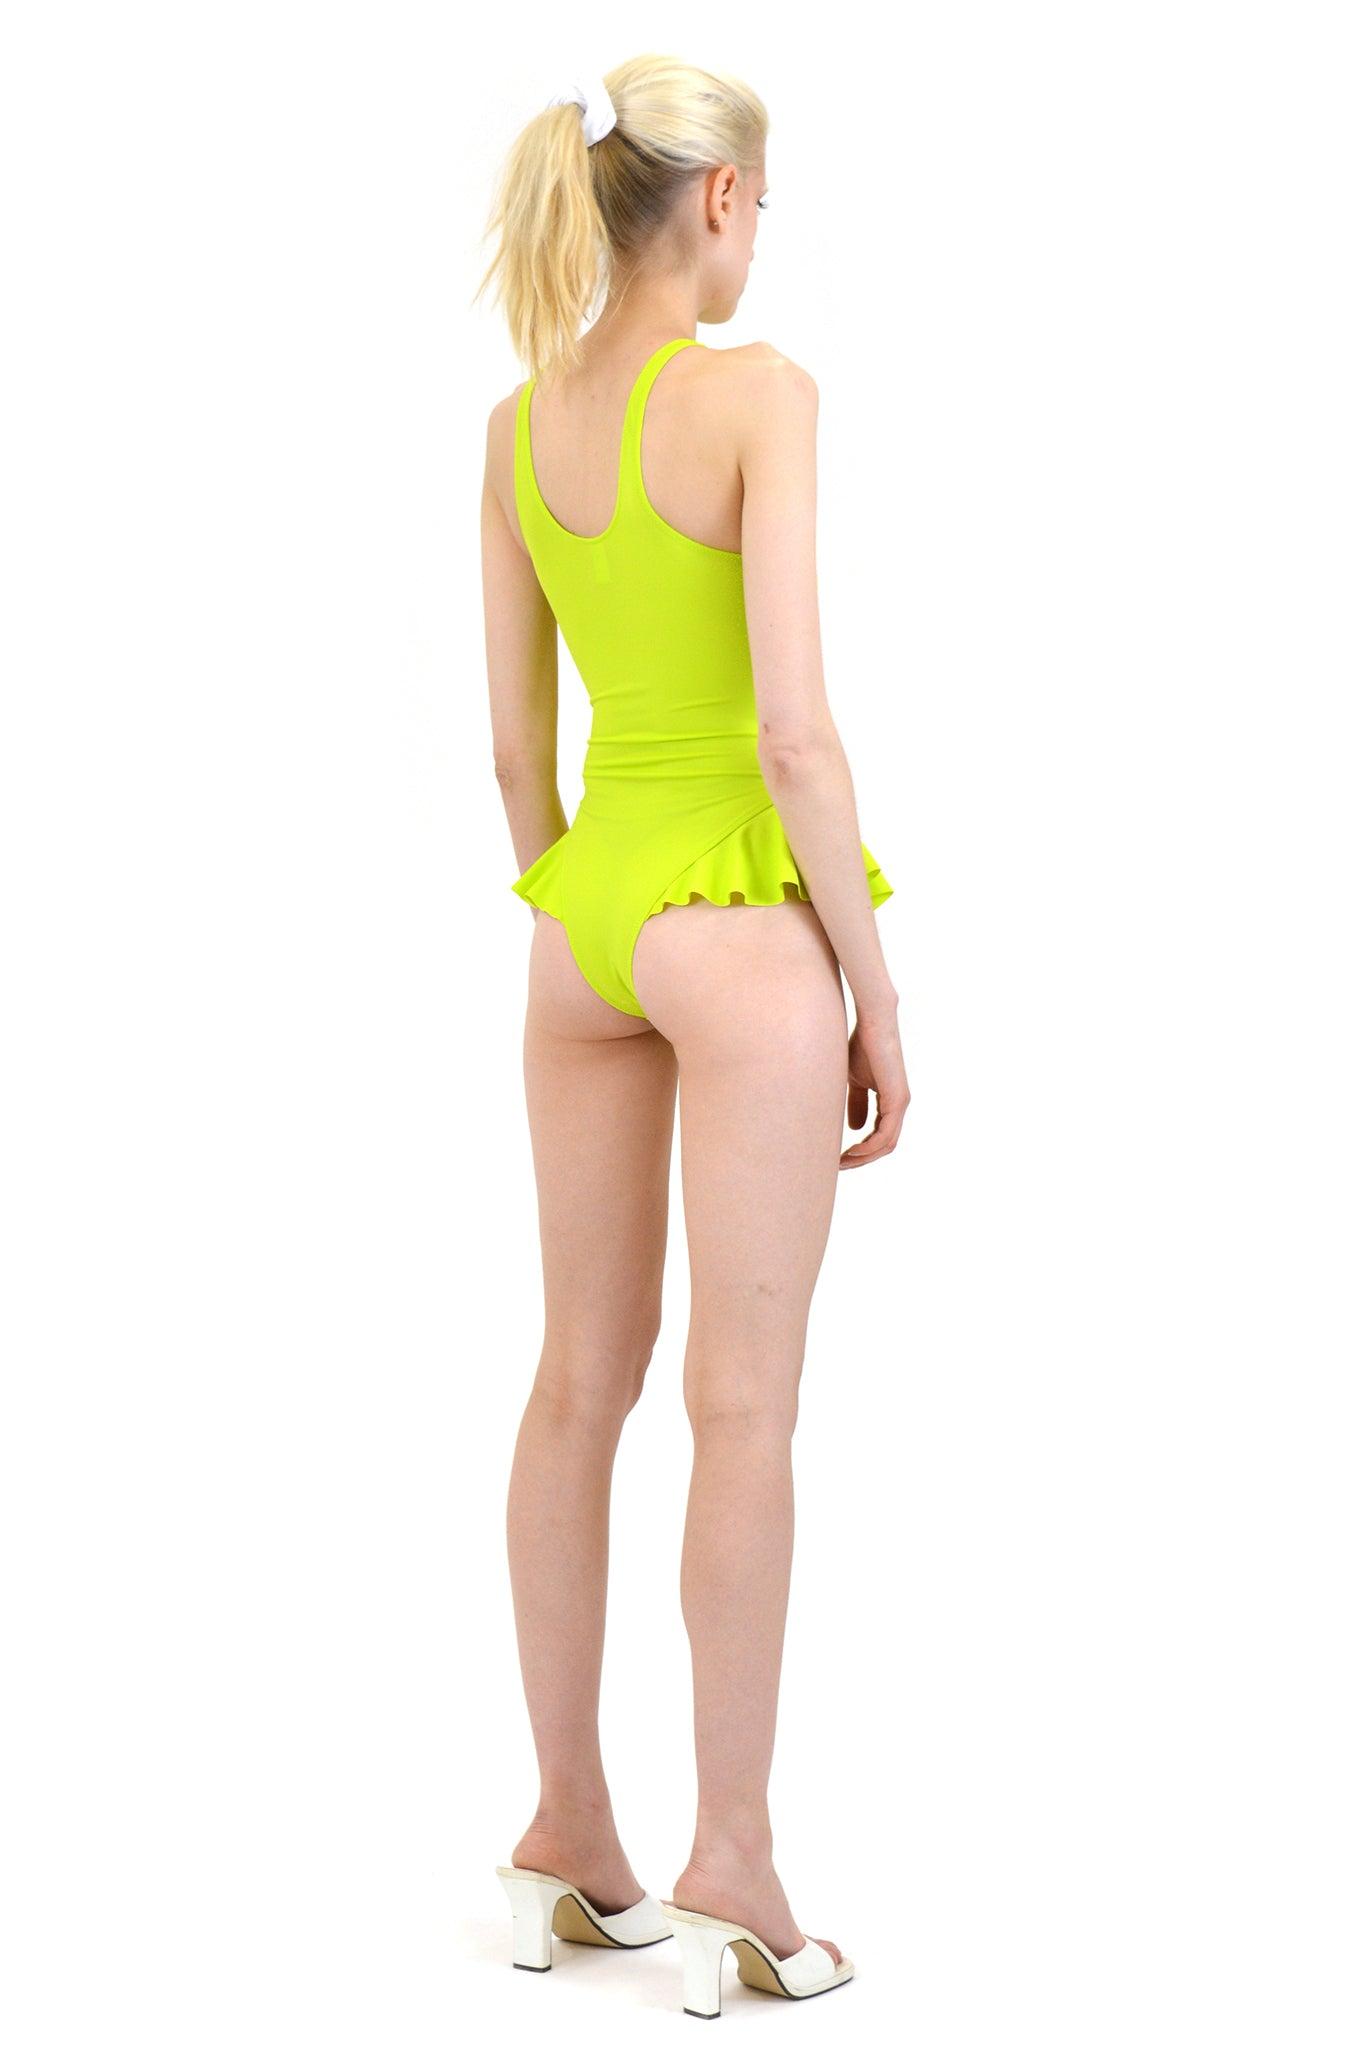 Fantabody Erika Swimsuit, Acid Green